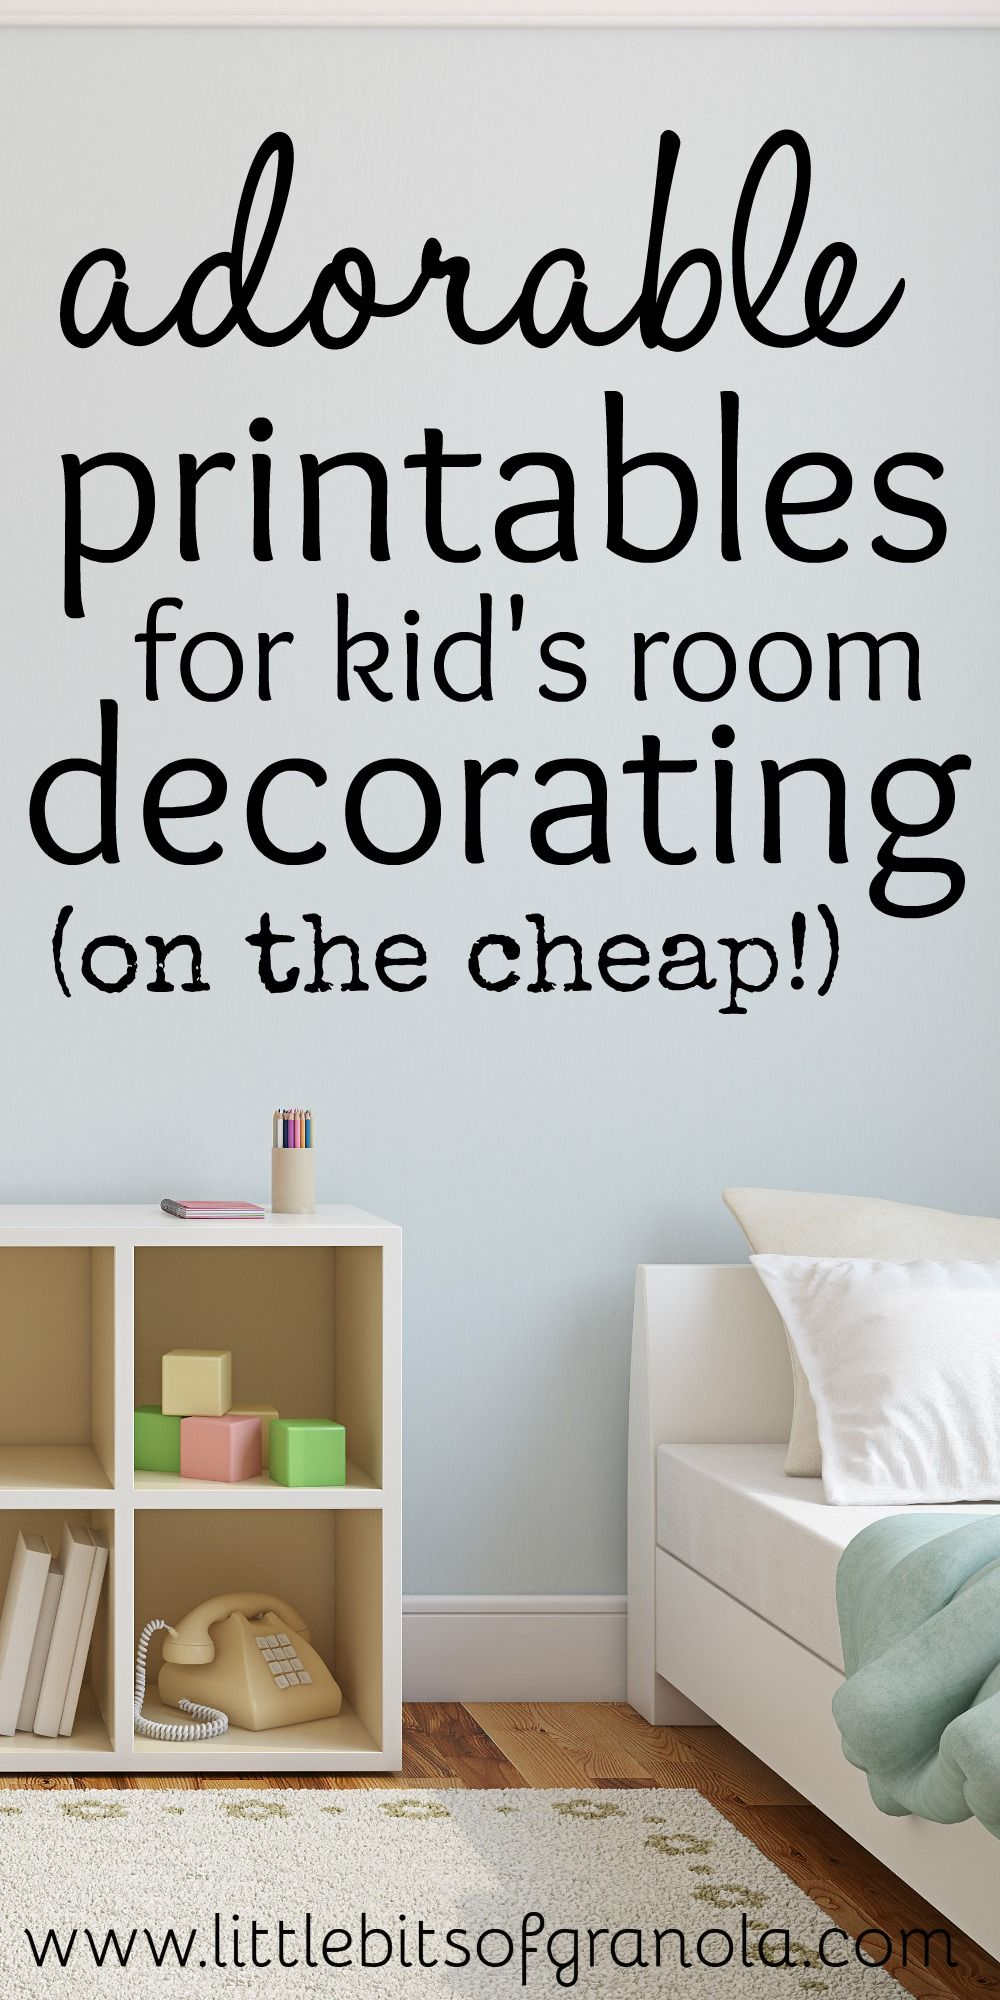 Amazing kids room printable wall art for cheap or free